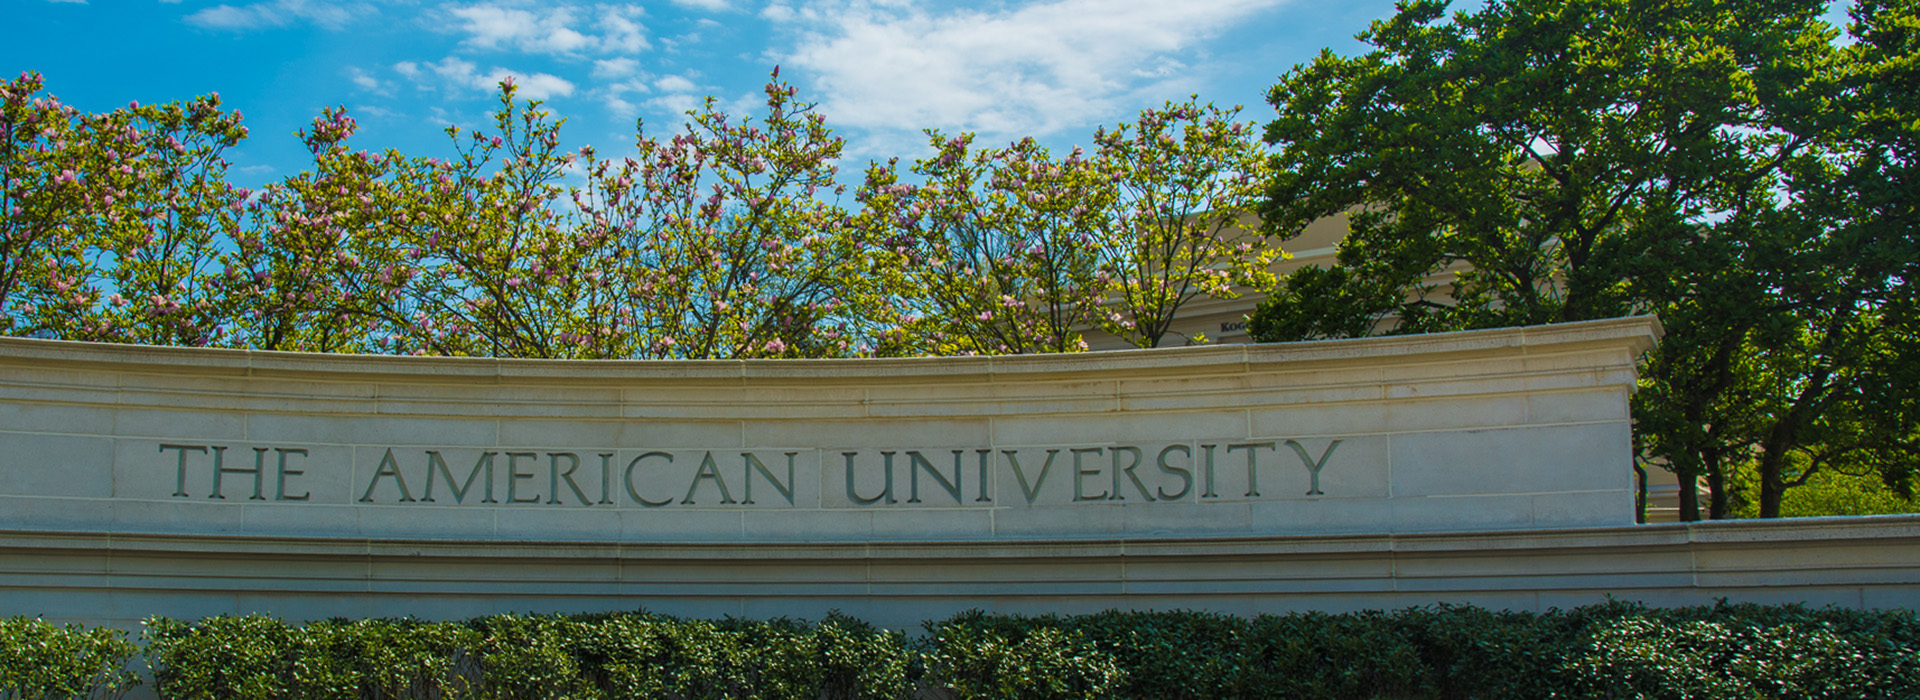 Main Gate of American University